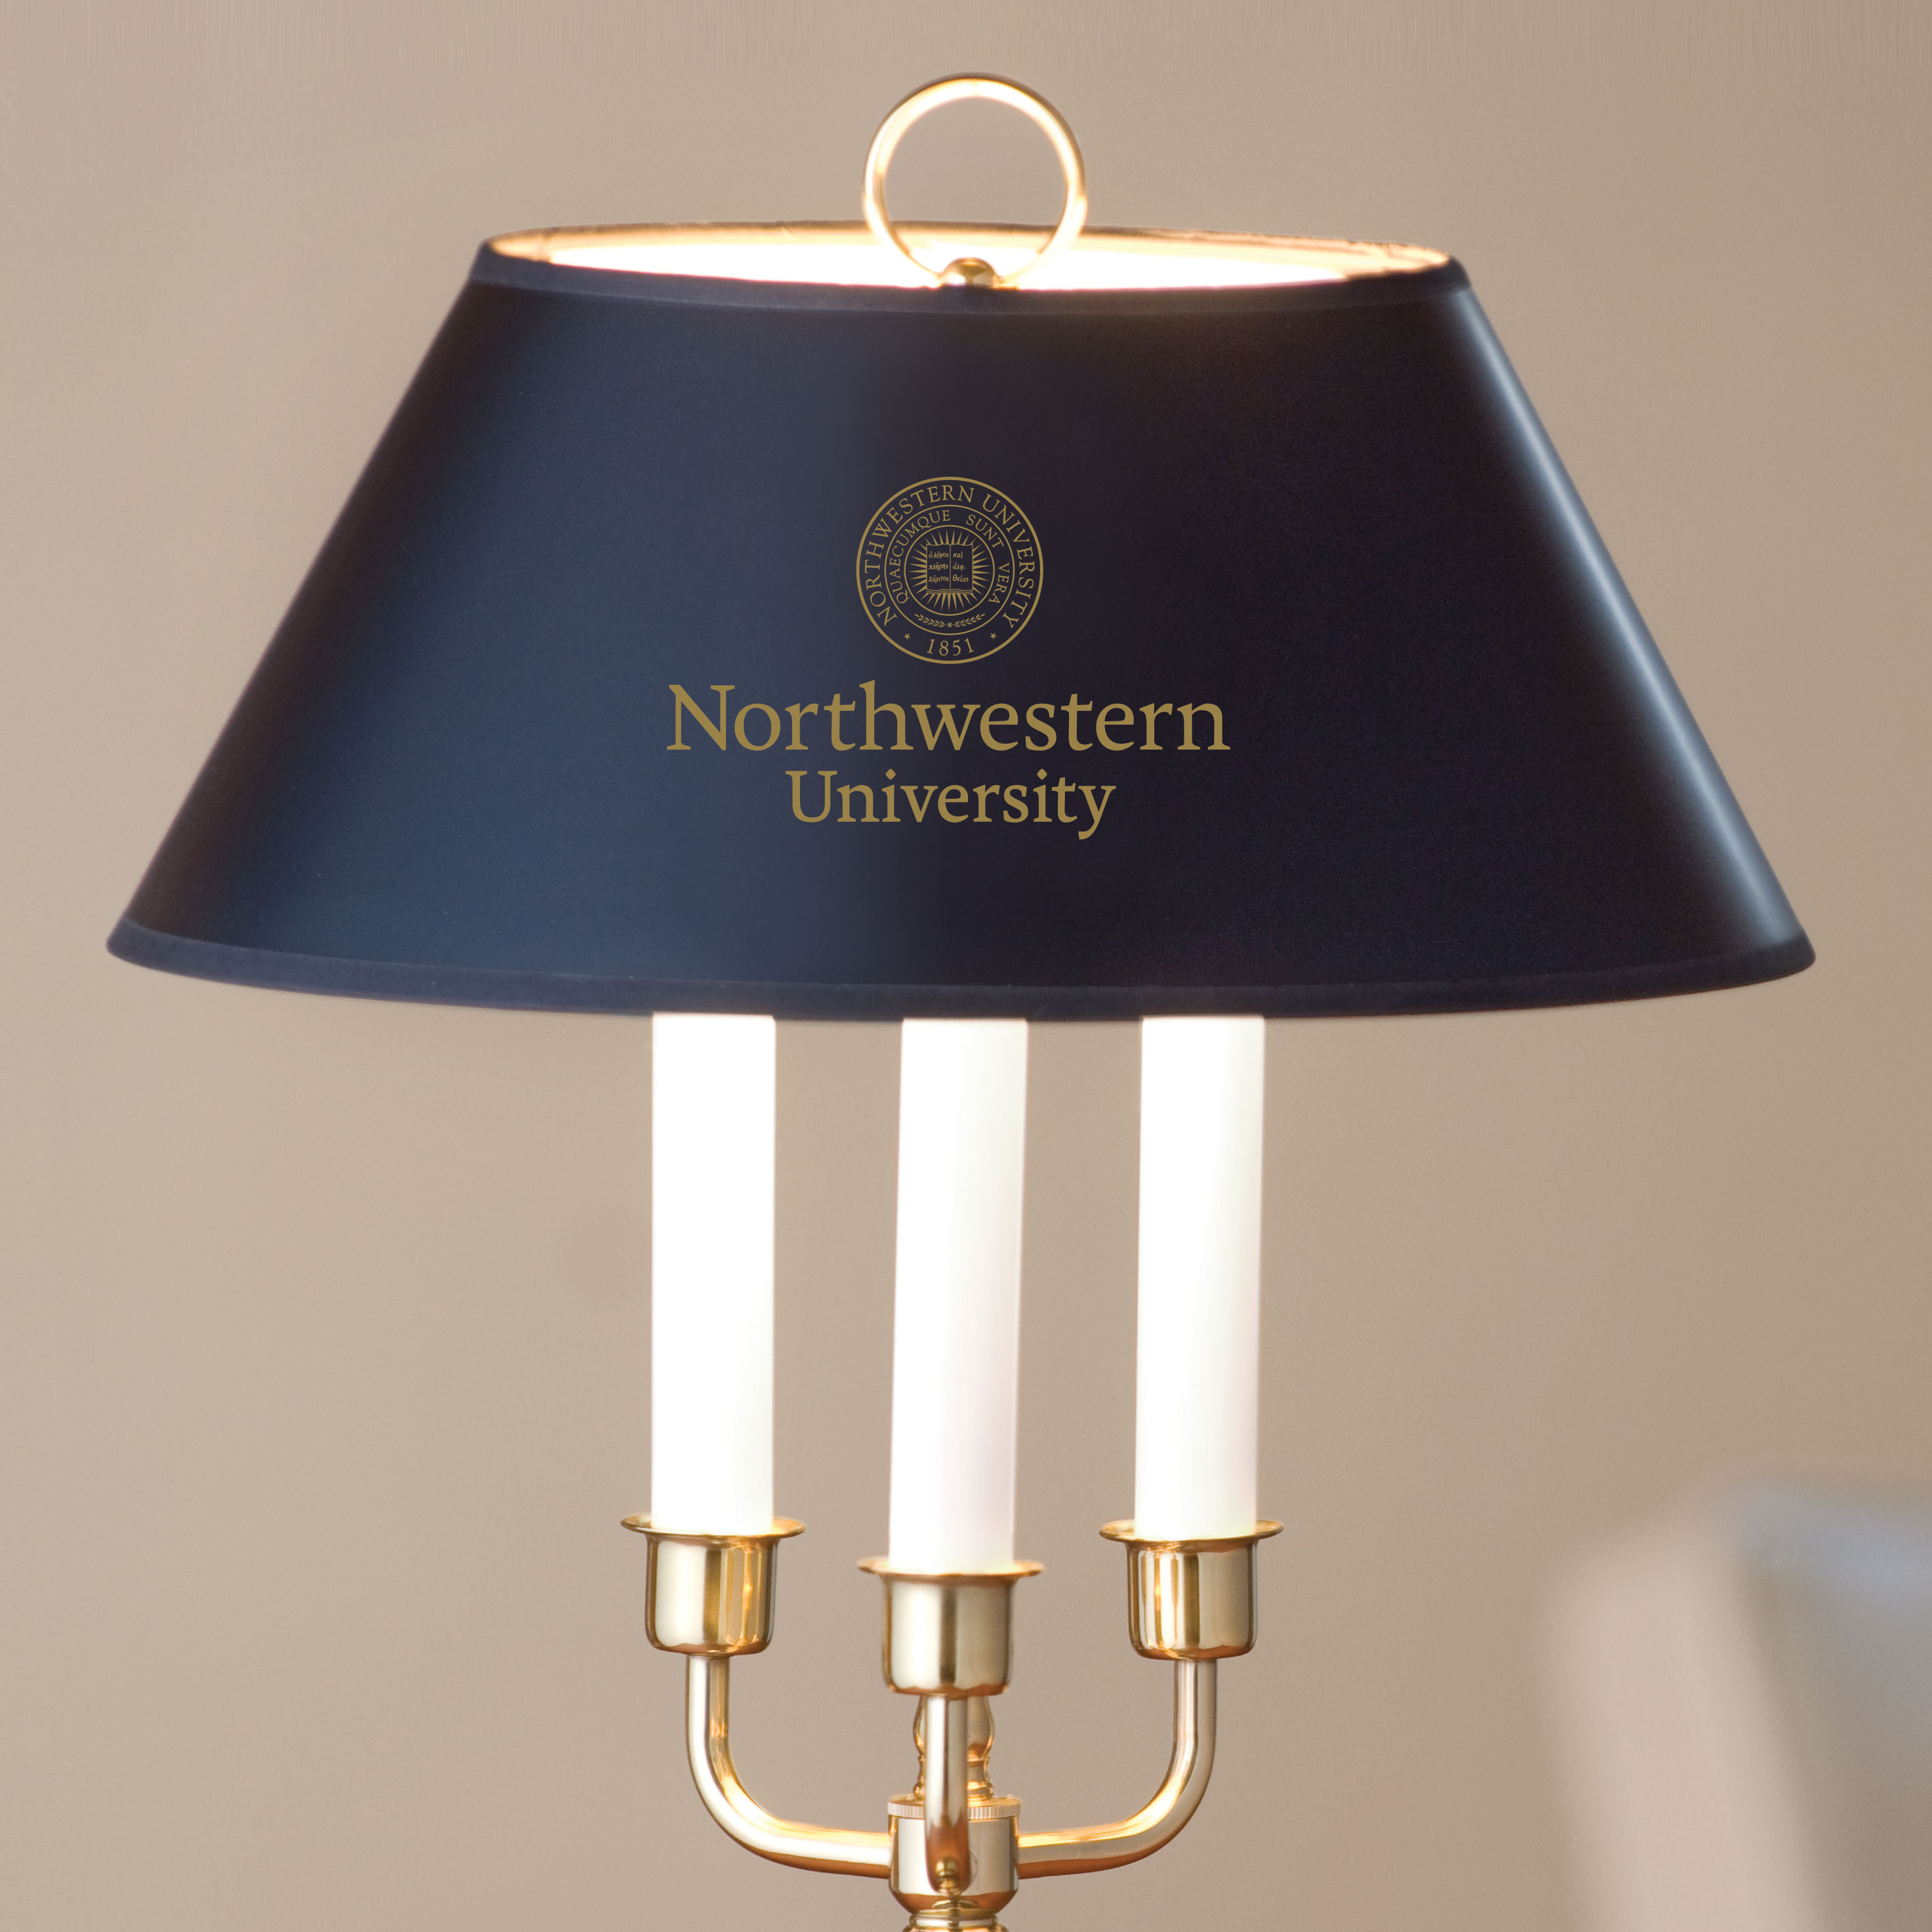 Northwestern University Lamp in Brass & Marble - Image 2